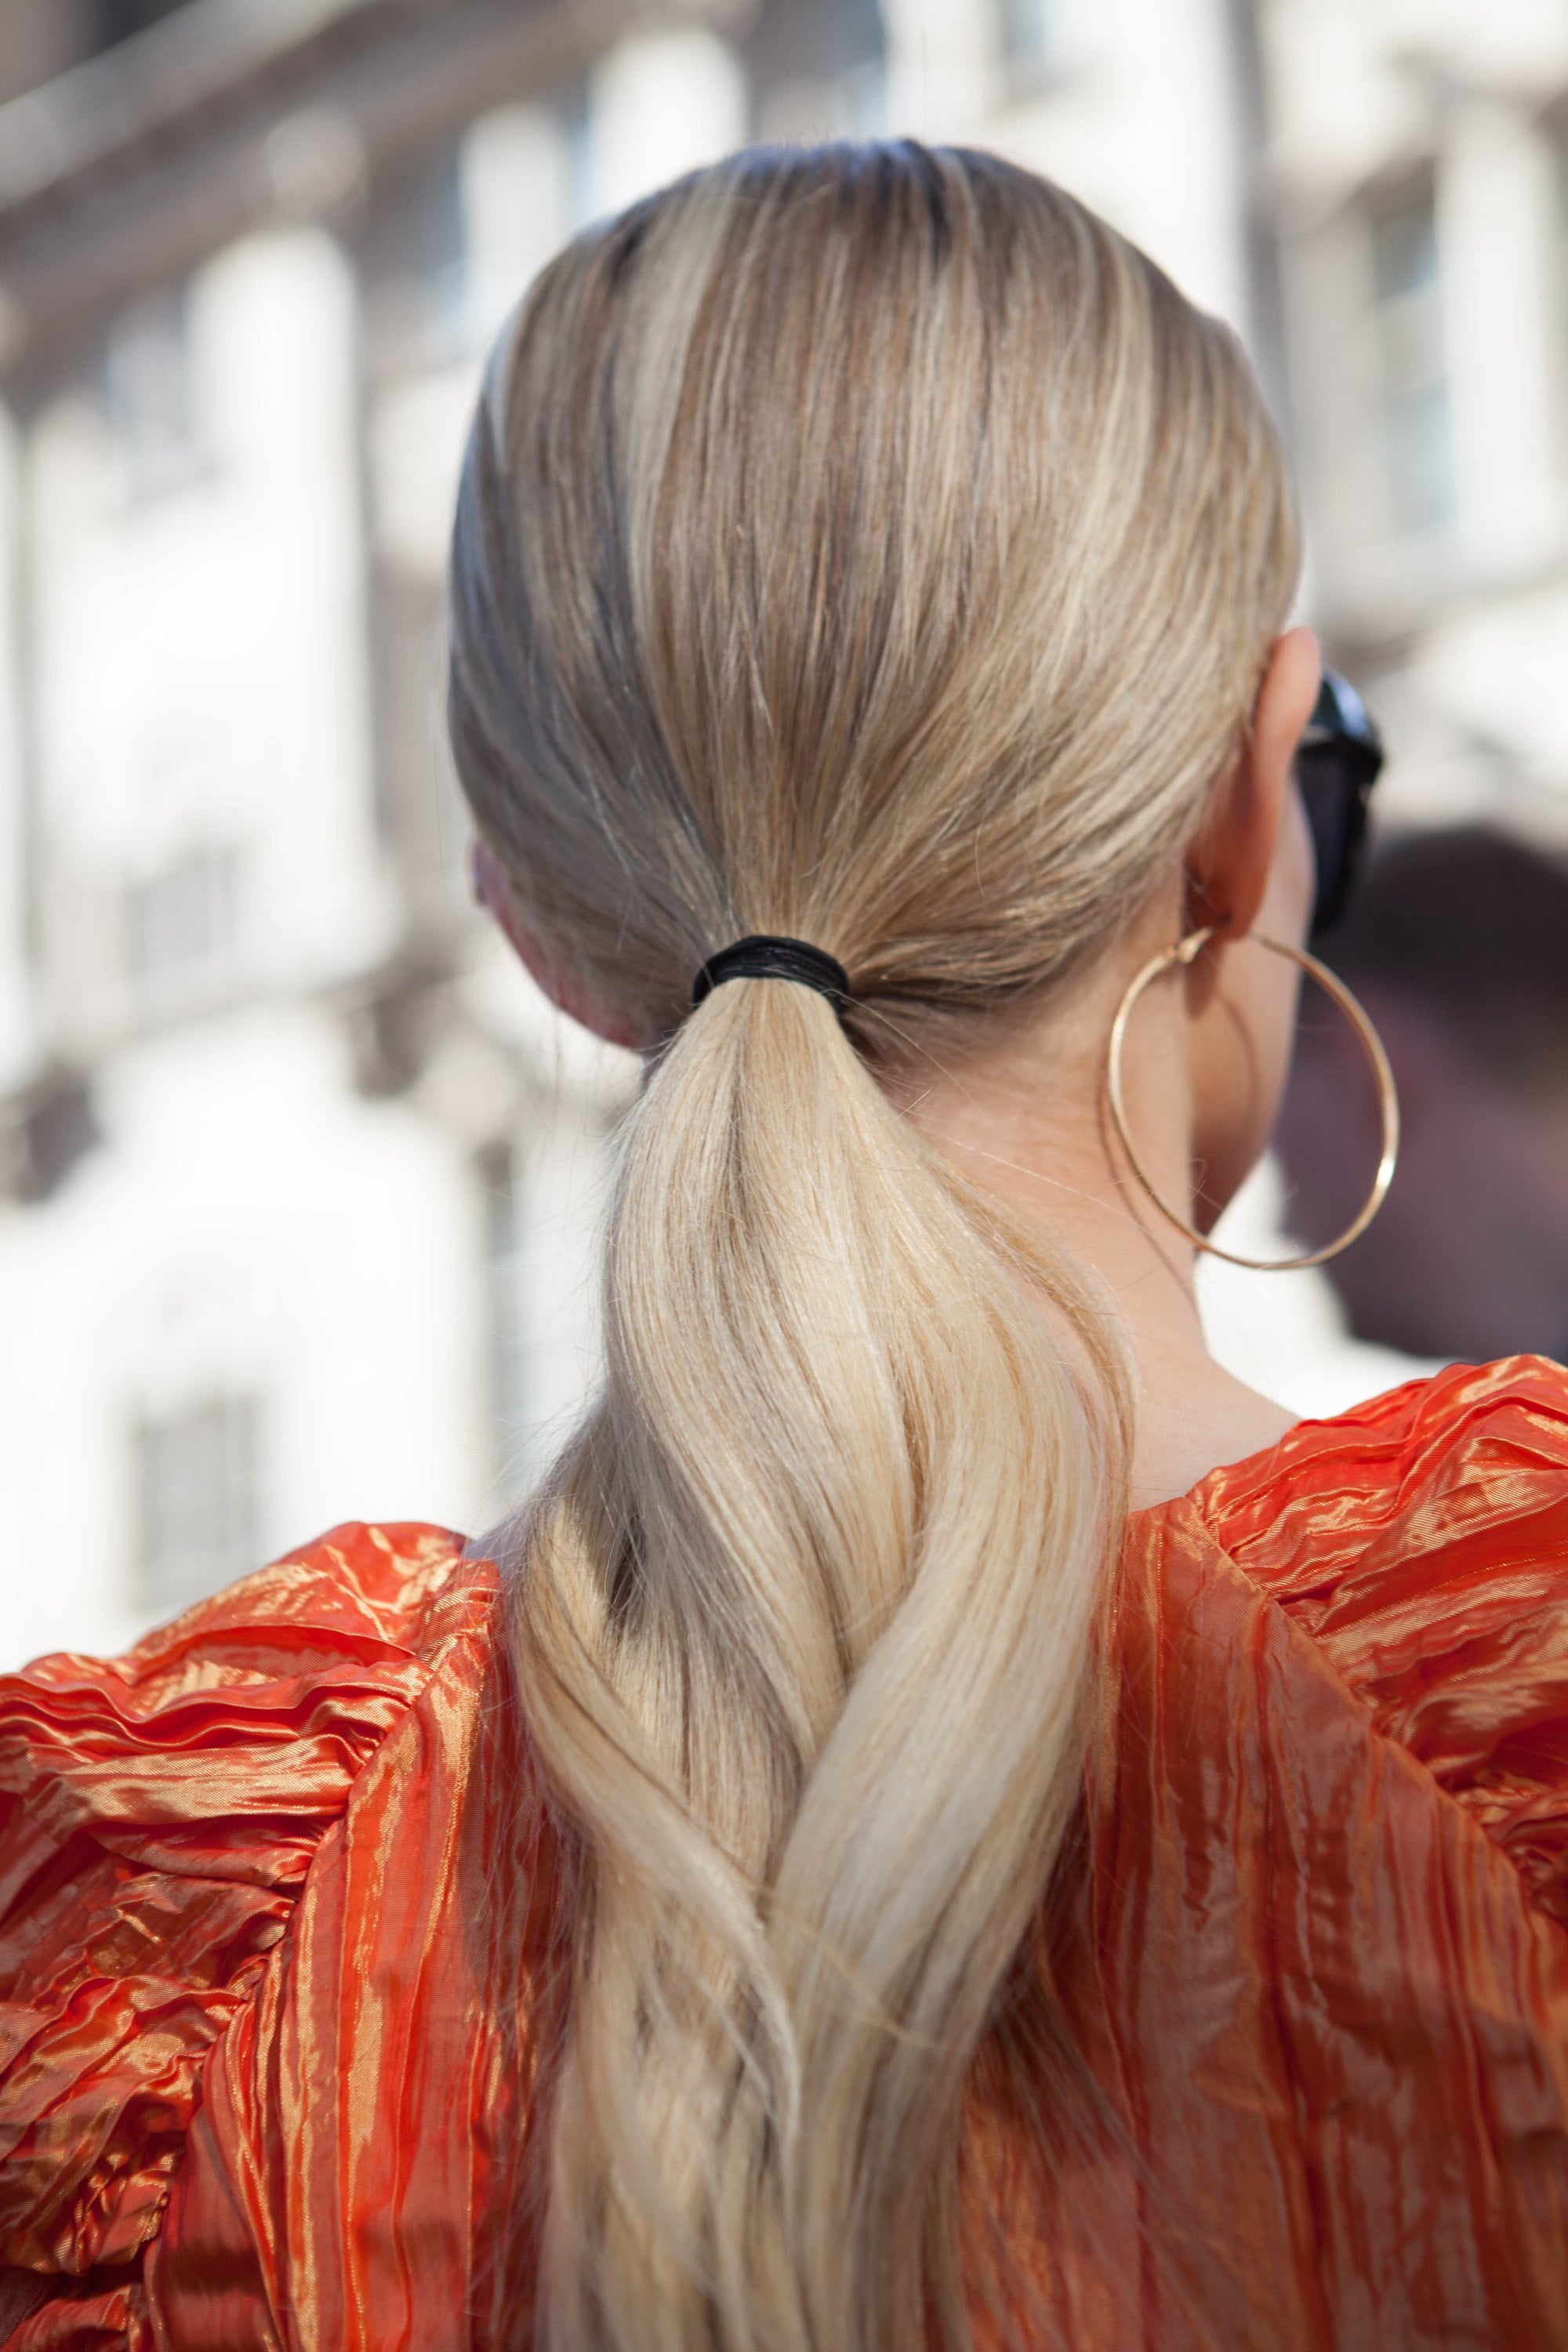 Woman with natural, long and low blonde wavy ponytail